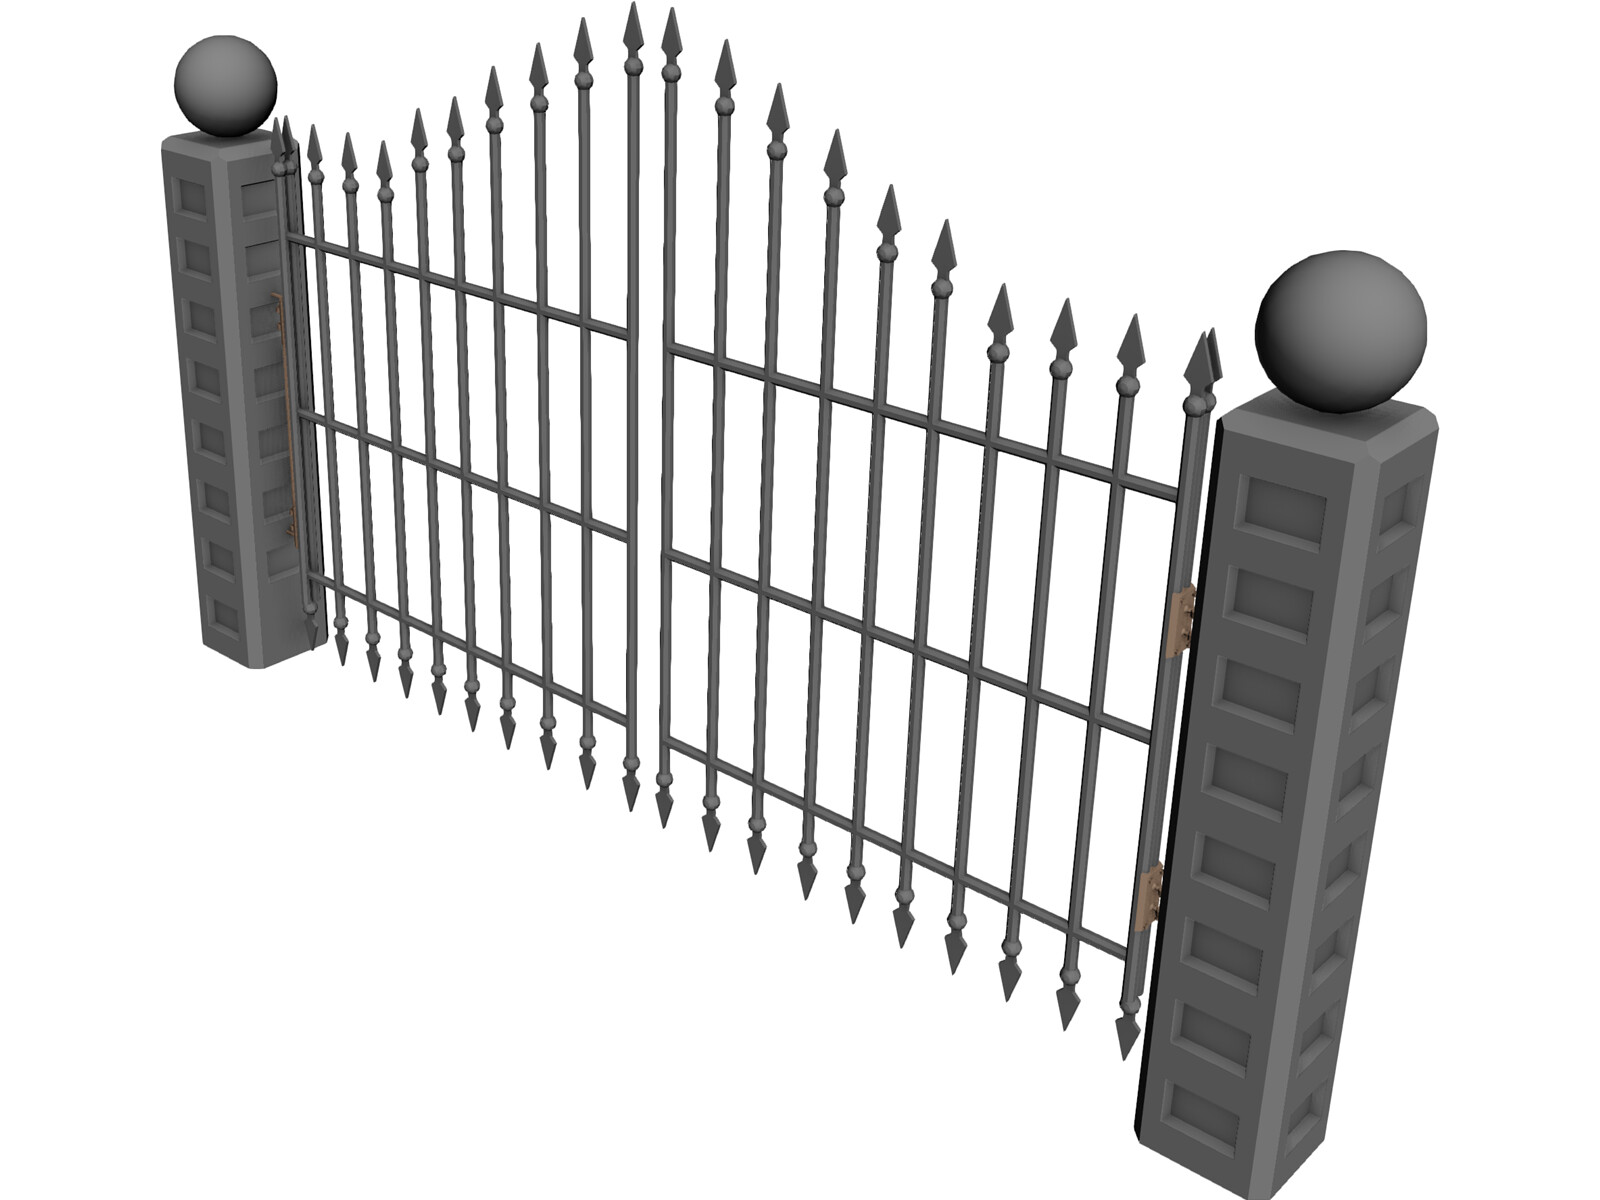 Spiked Gate 3D Model